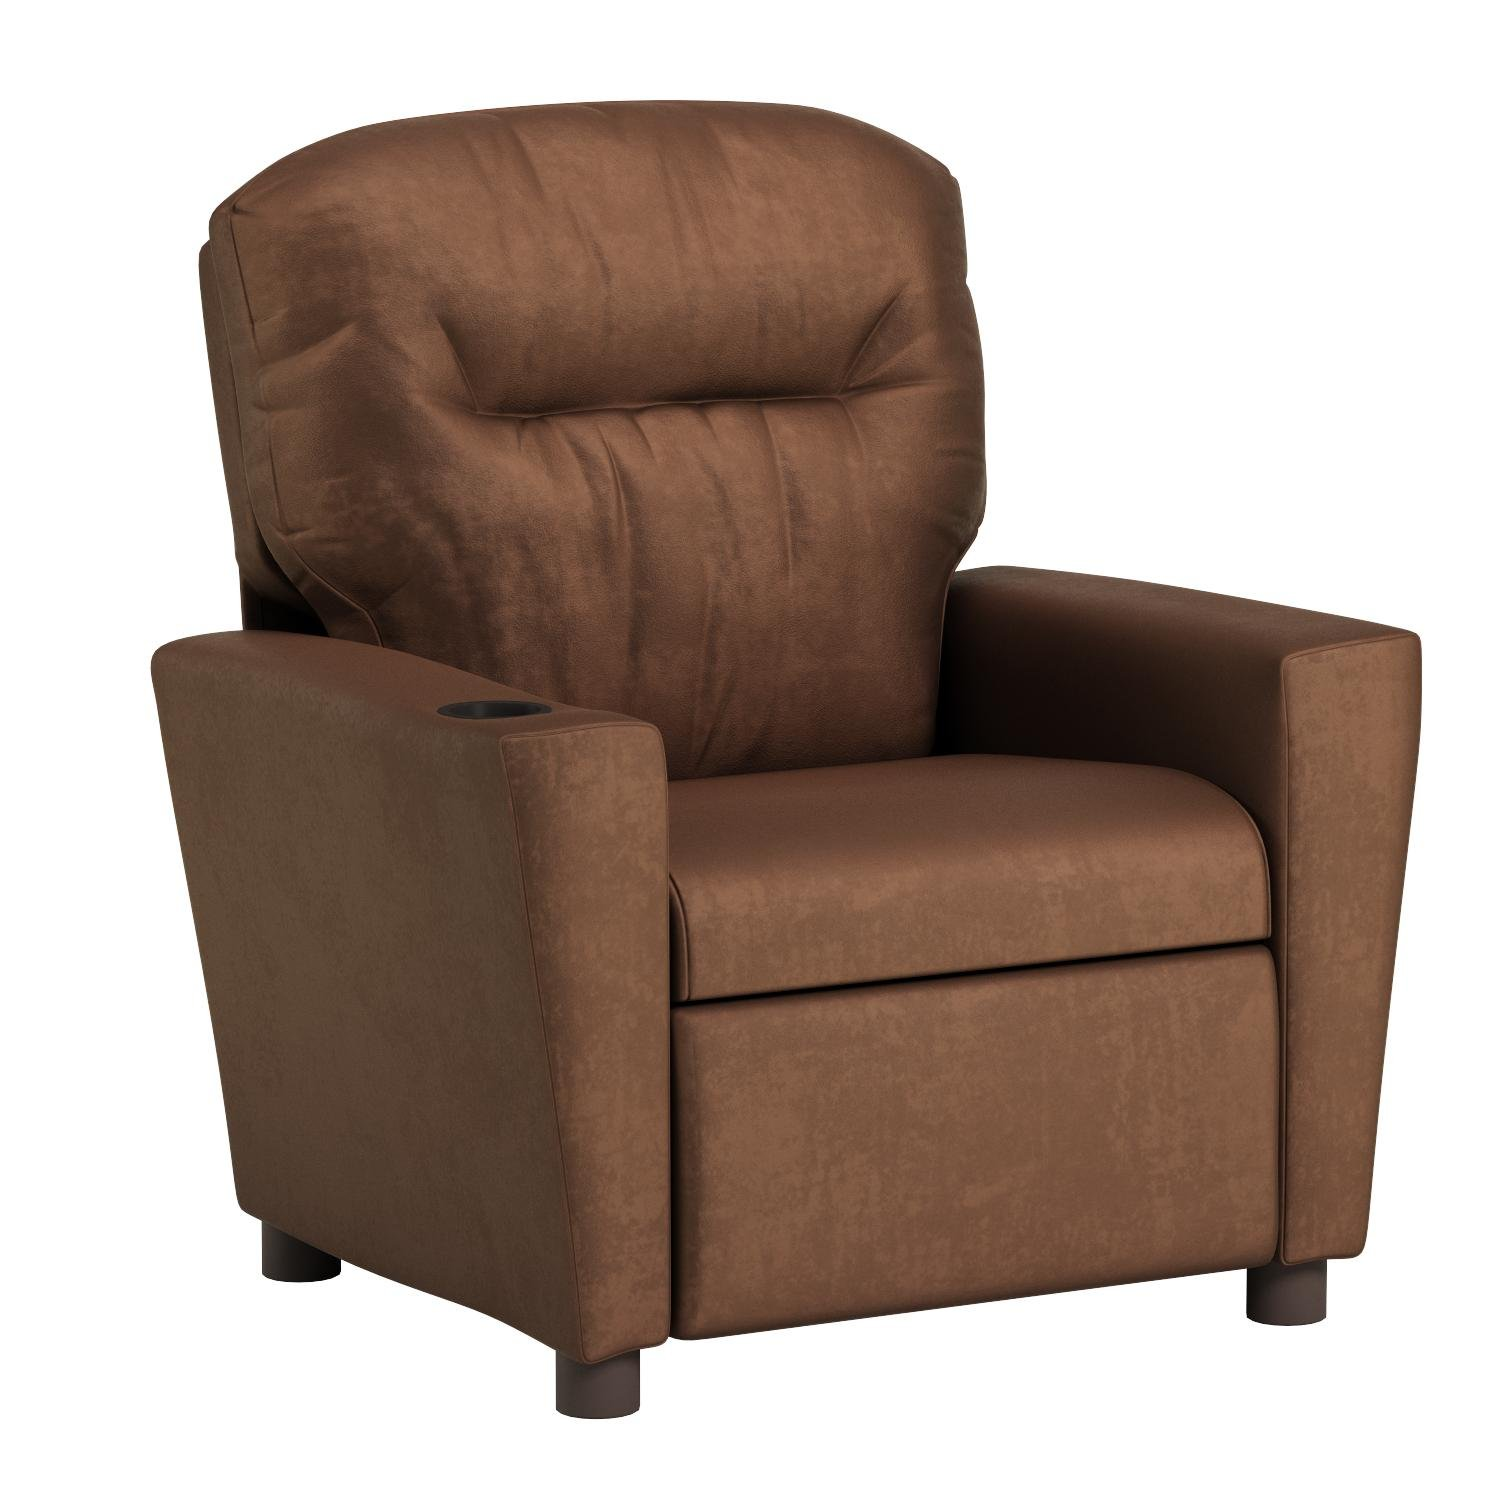 Kidz World Kids Recliner w Cupholder w Chocolate Suede 446464, Brown